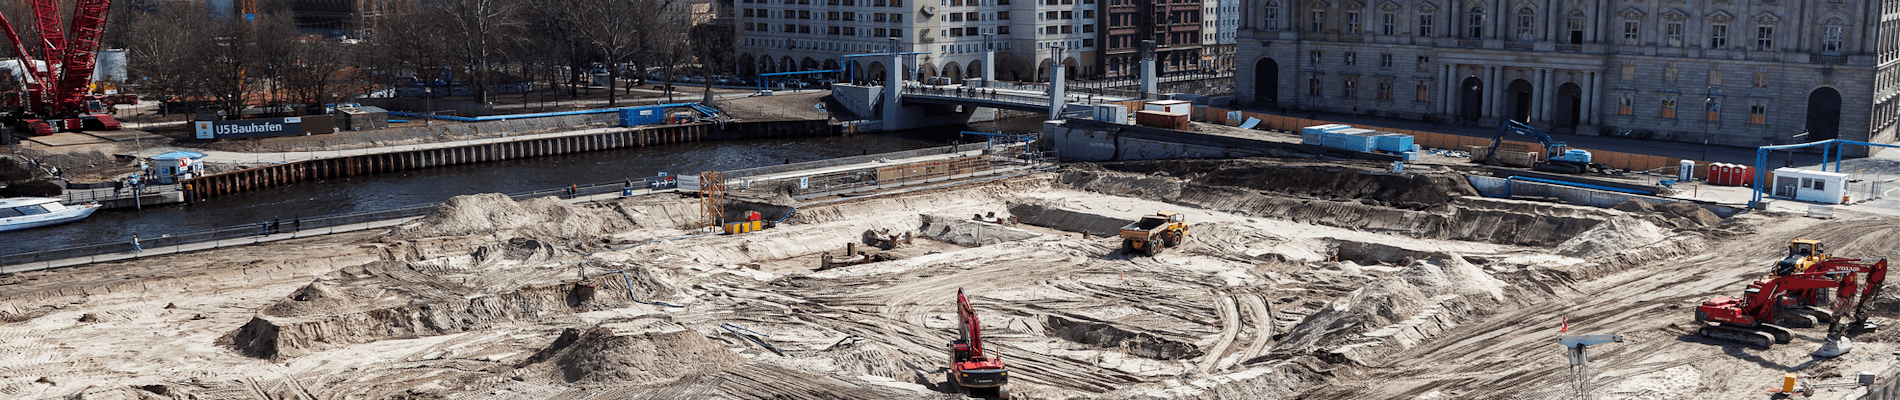 Construction site with equipment workers